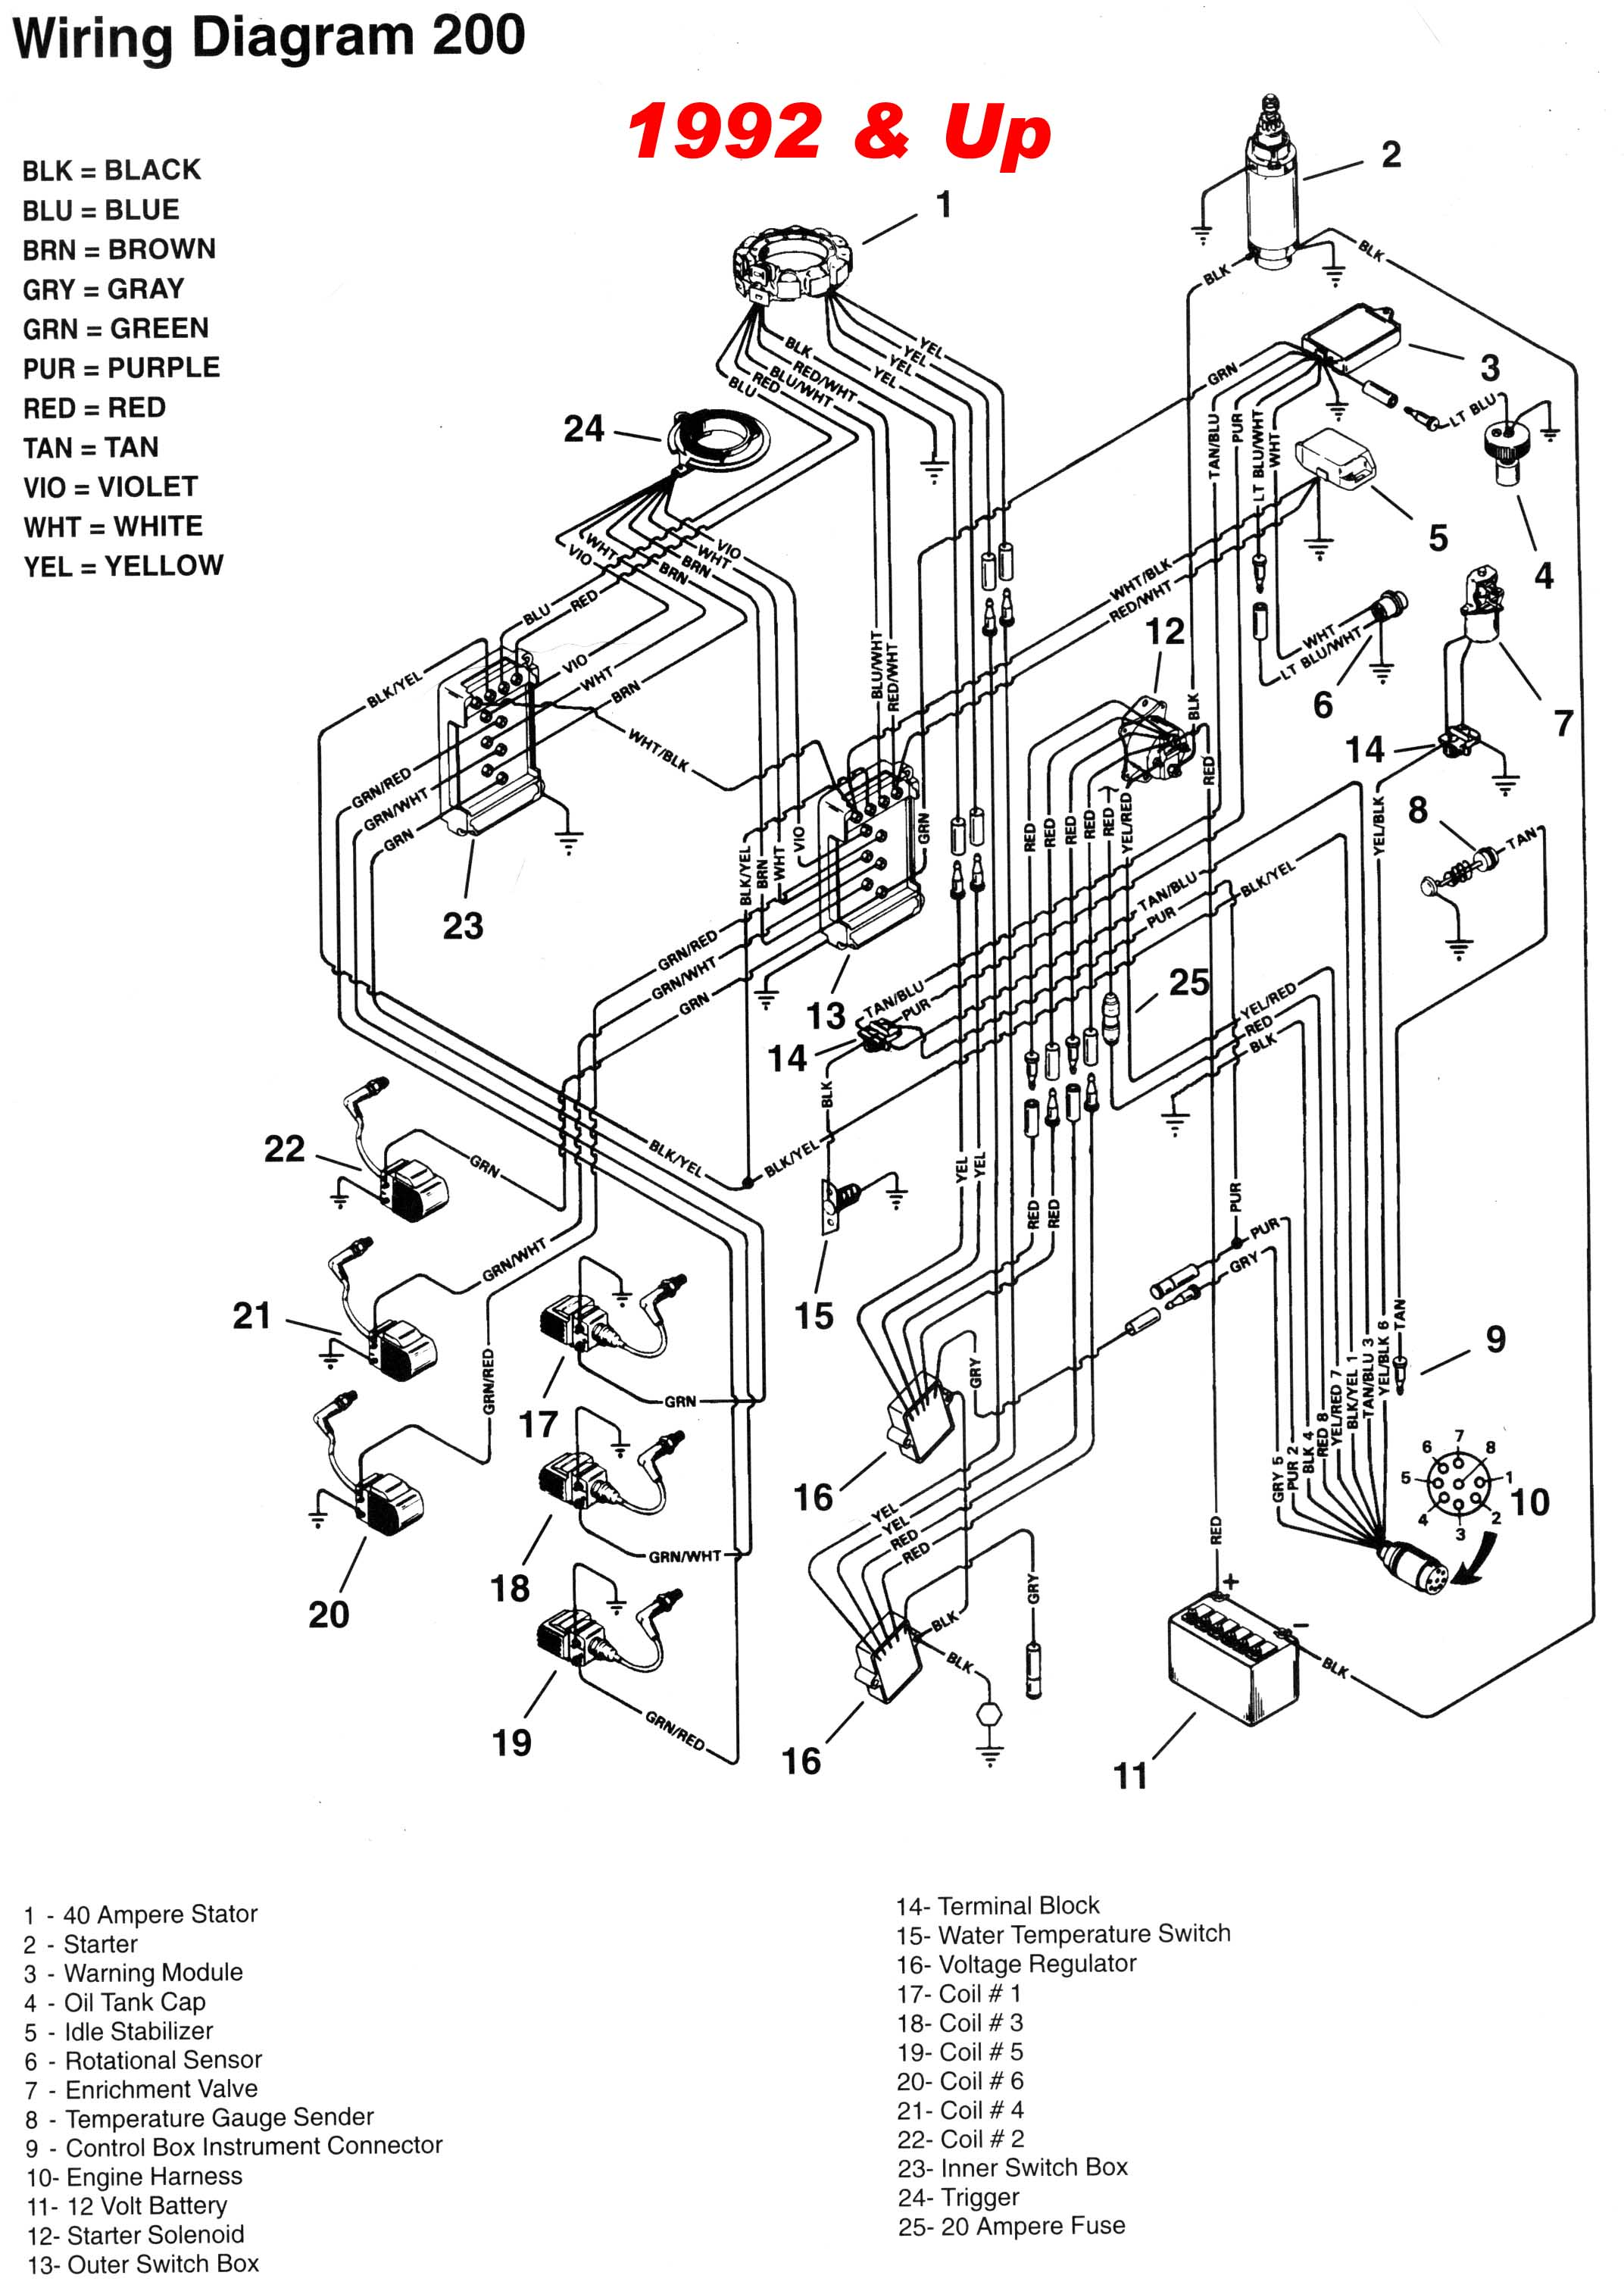 mercury_92up_200_wiring mercury outboard 2 5 and 3 0l v6 and gearcase faq mercury 14 pin wiring harness diagram at nearapp.co